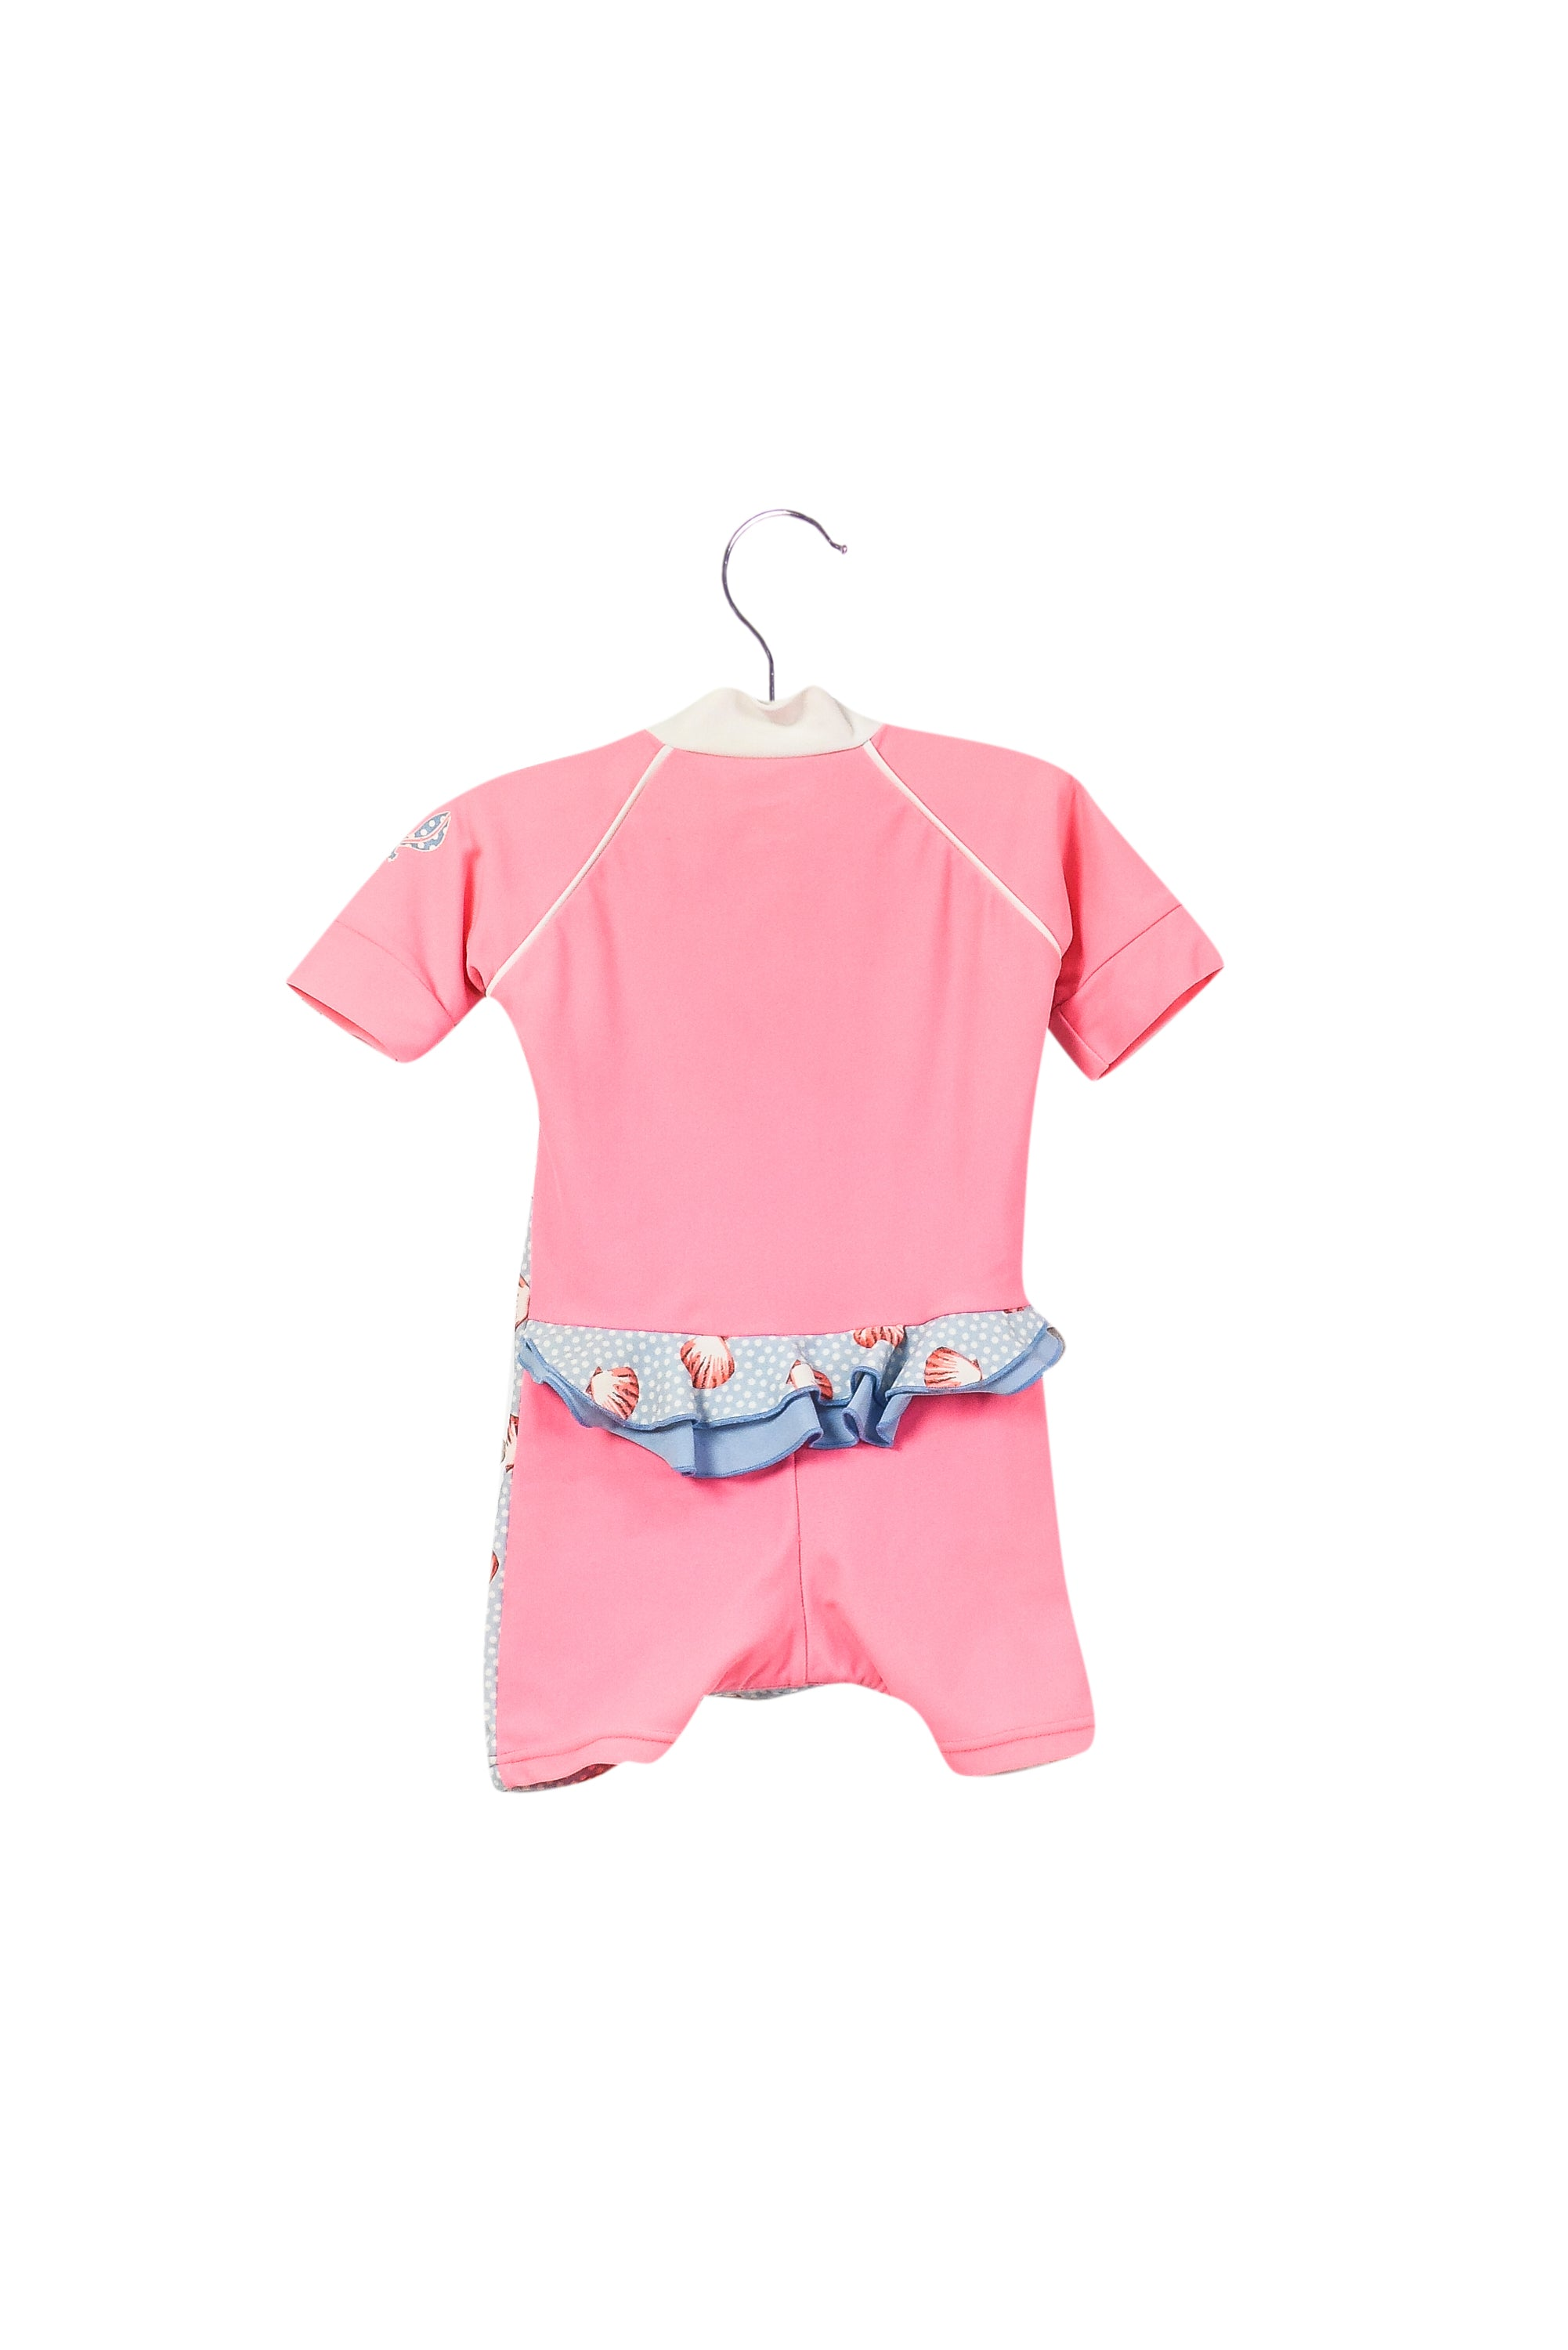 10043089 Platypus Baby~Swimsuit 6-9M at Retykle